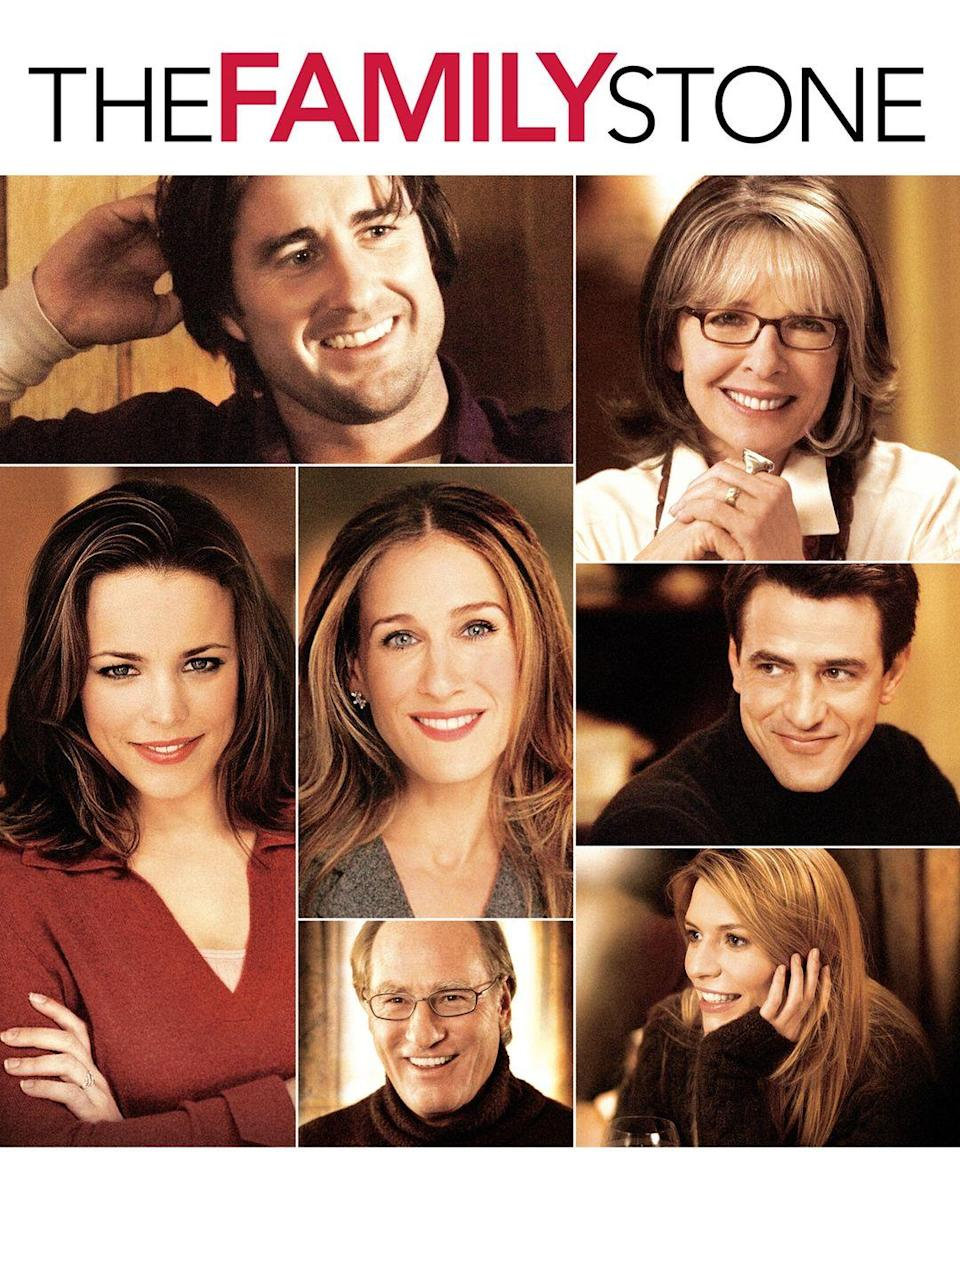 """<p>This 2005 Christmas flick features an all-star cast that includes Sarah Jessica Parker, Luke Wilson, and Diane Keaton.</p><p><a class=""""link rapid-noclick-resp"""" href=""""https://www.amazon.com/Family-Stone-Claire-Danes/dp/B000I9X6T0/?tag=syn-yahoo-20&ascsubtag=%5Bartid%7C10055.g.1315%5Bsrc%7Cyahoo-us"""" rel=""""nofollow noopener"""" target=""""_blank"""" data-ylk=""""slk:WATCH NOW"""">WATCH NOW</a></p>"""